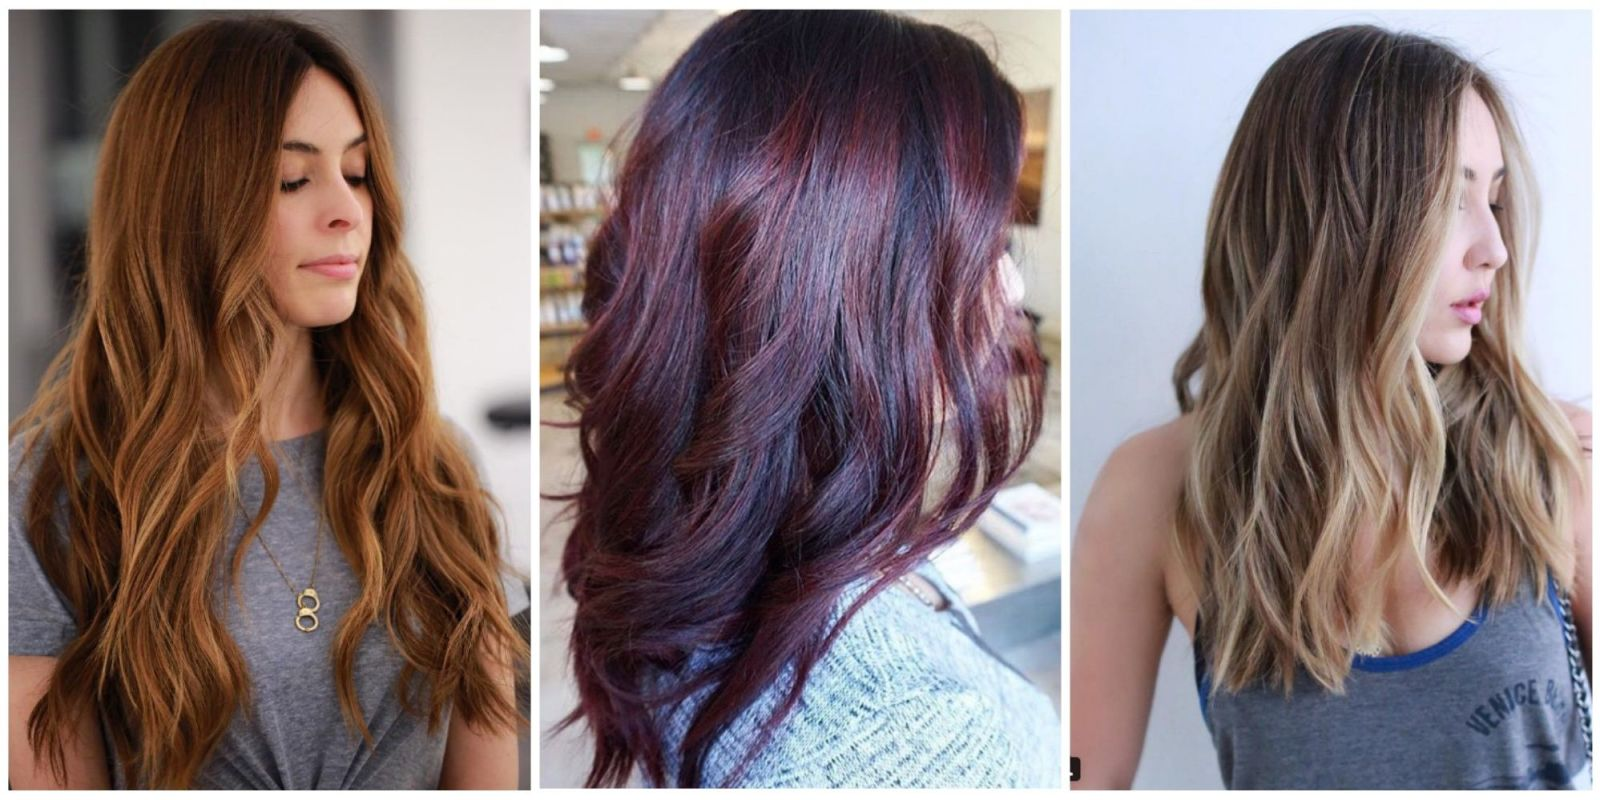 Hair Color Styles: Best Hair Dyes For Autumn